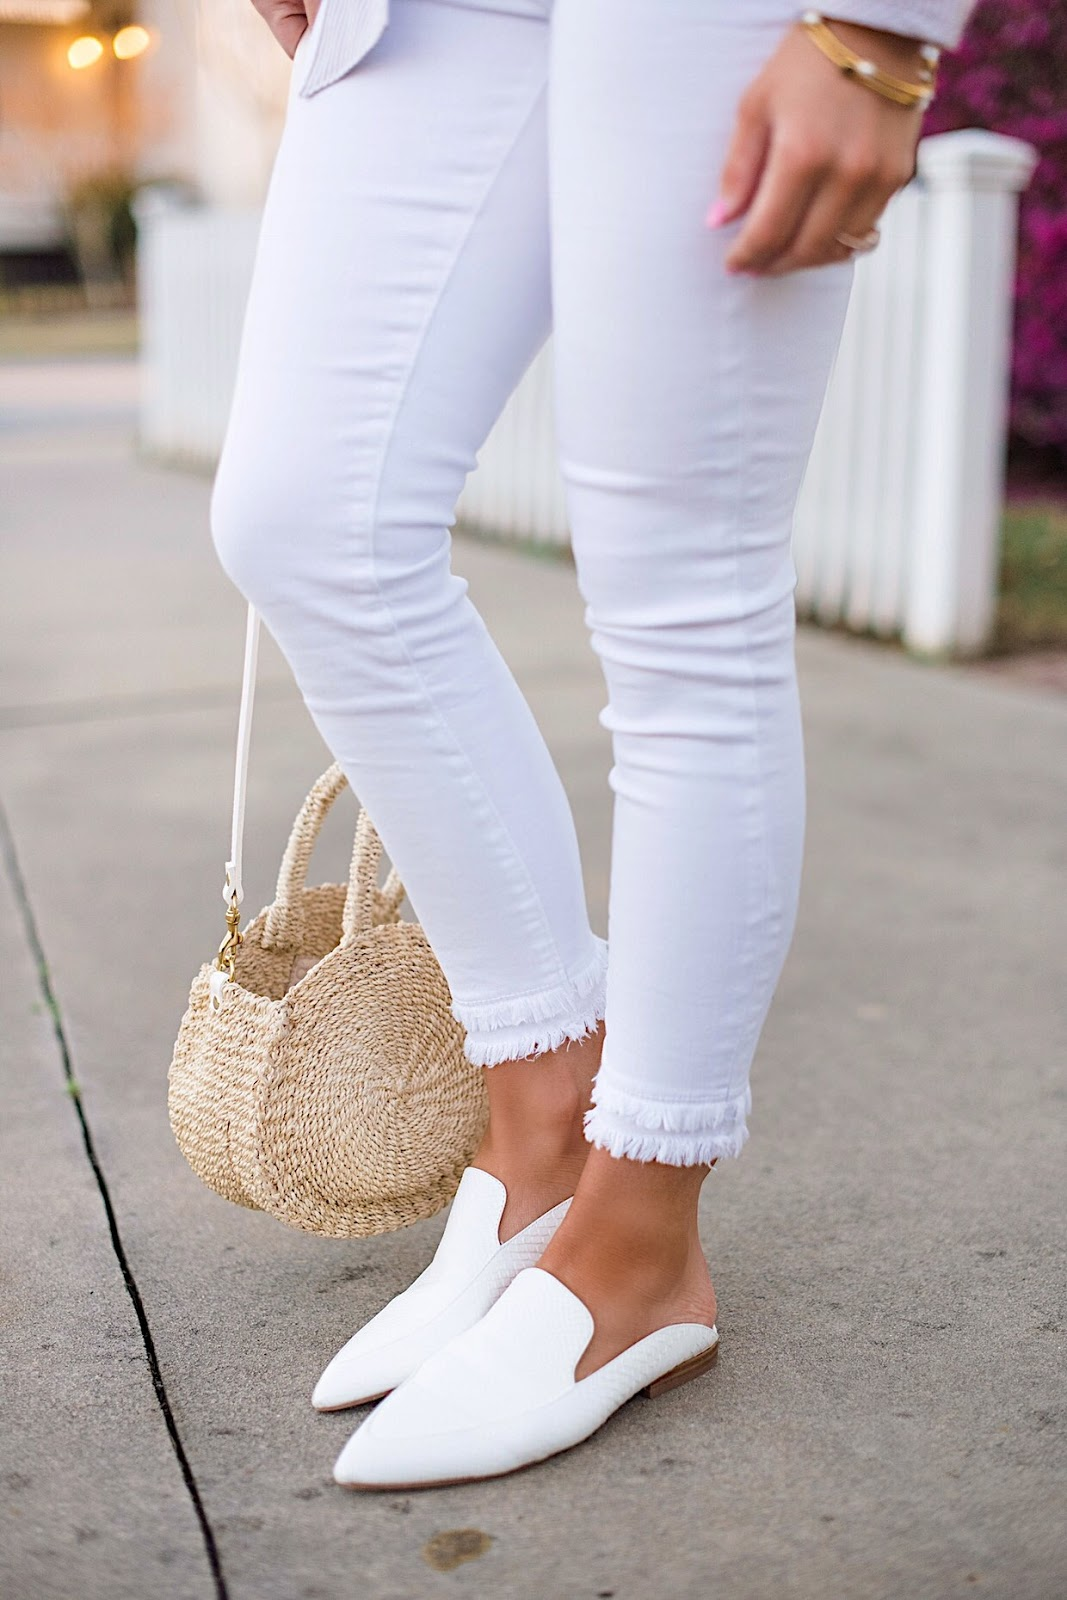 Spring Style Frayed Hem White Jeans - Click through for the full post on Something Delightful Blog